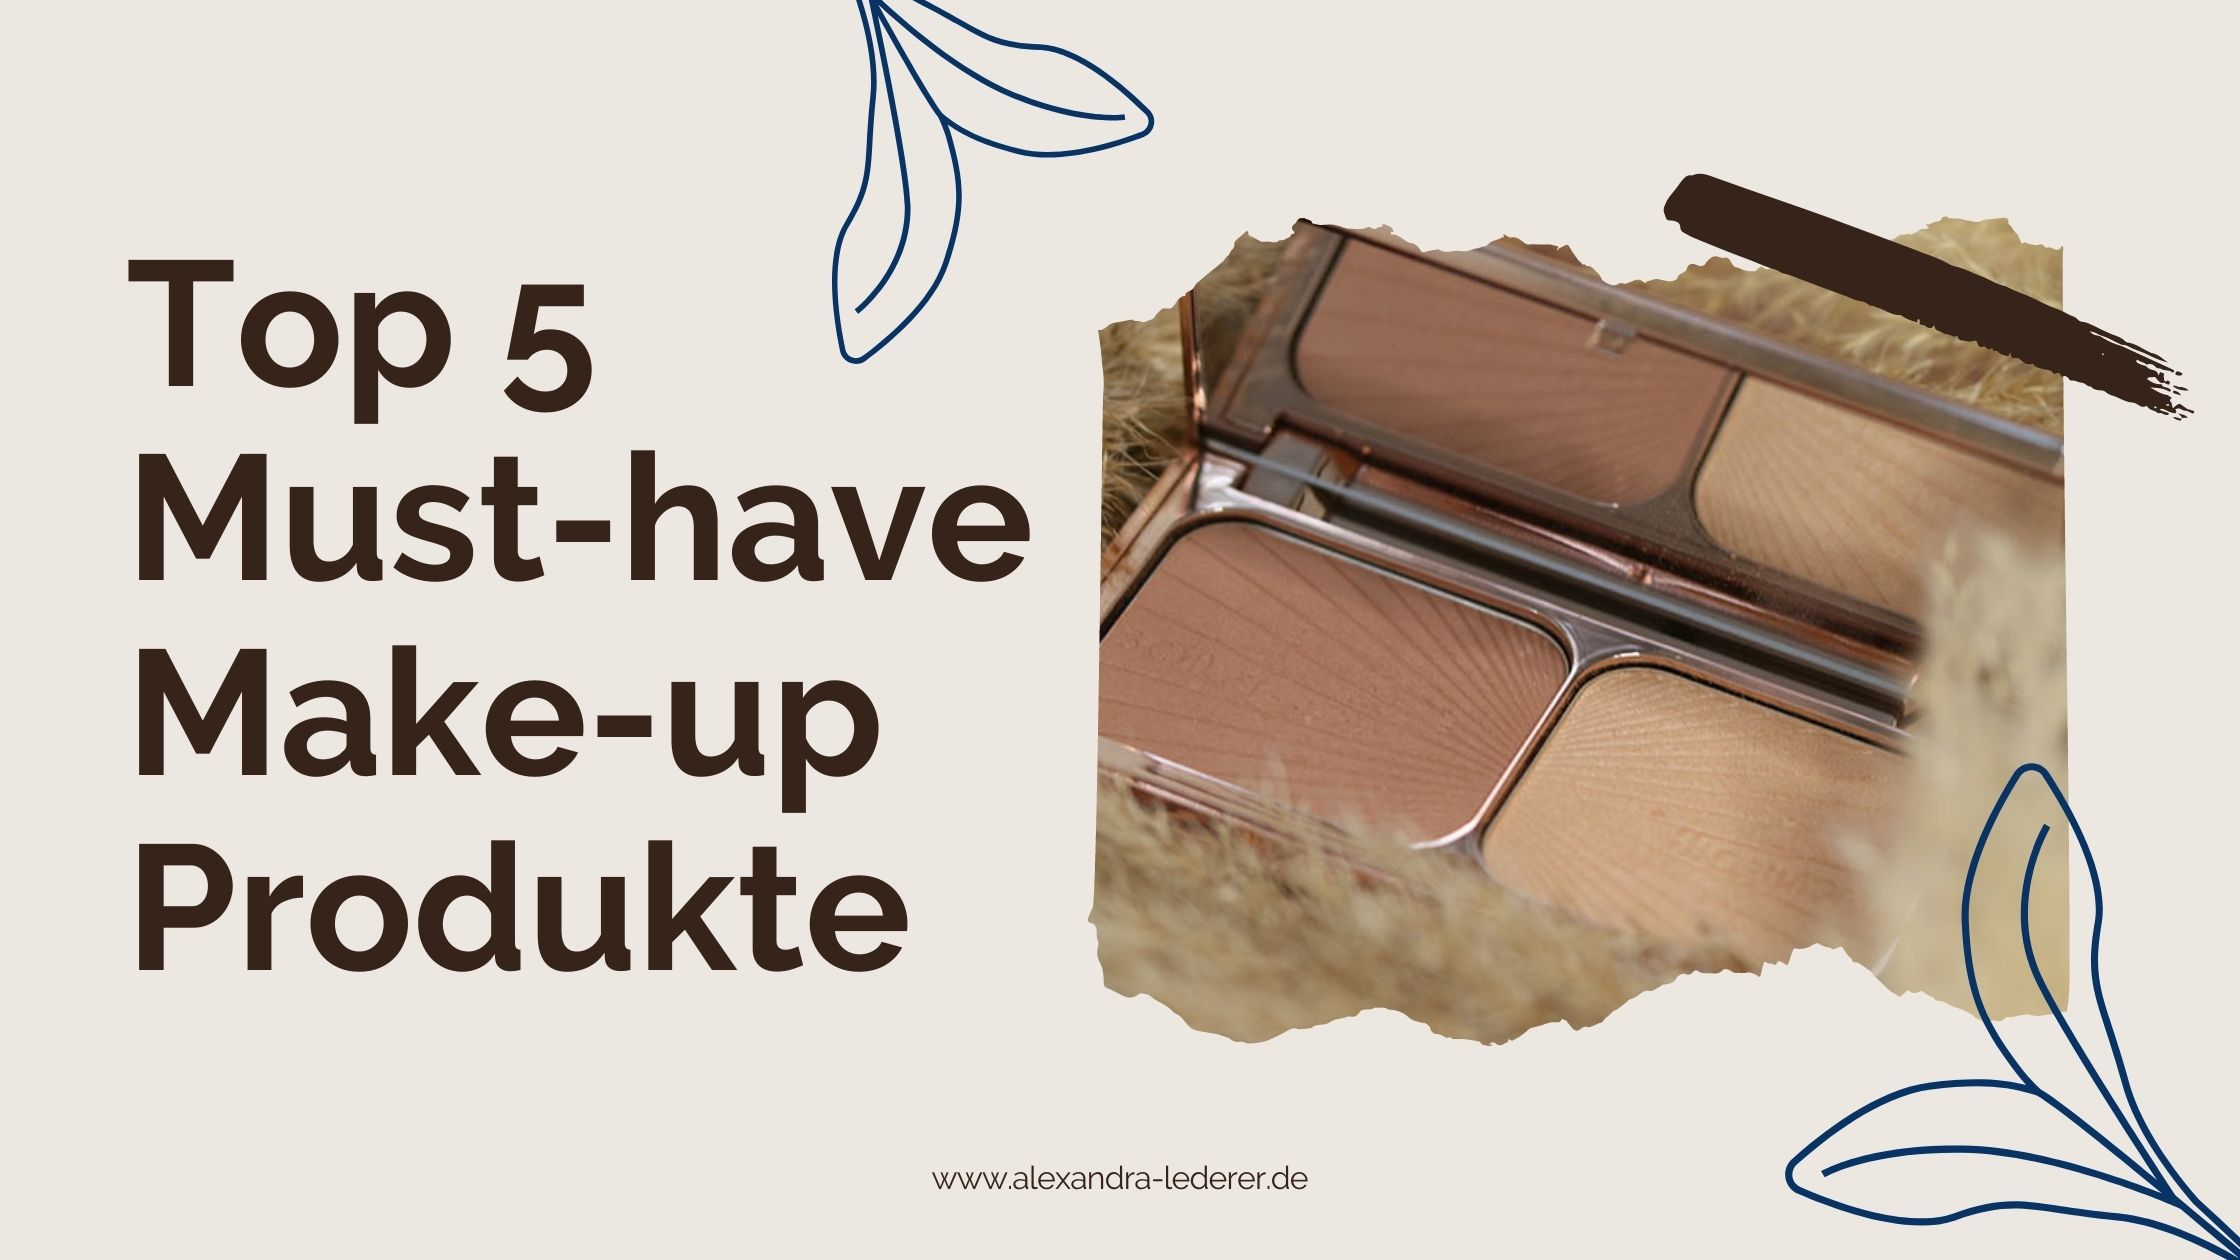 Must-have Make-up Produkte